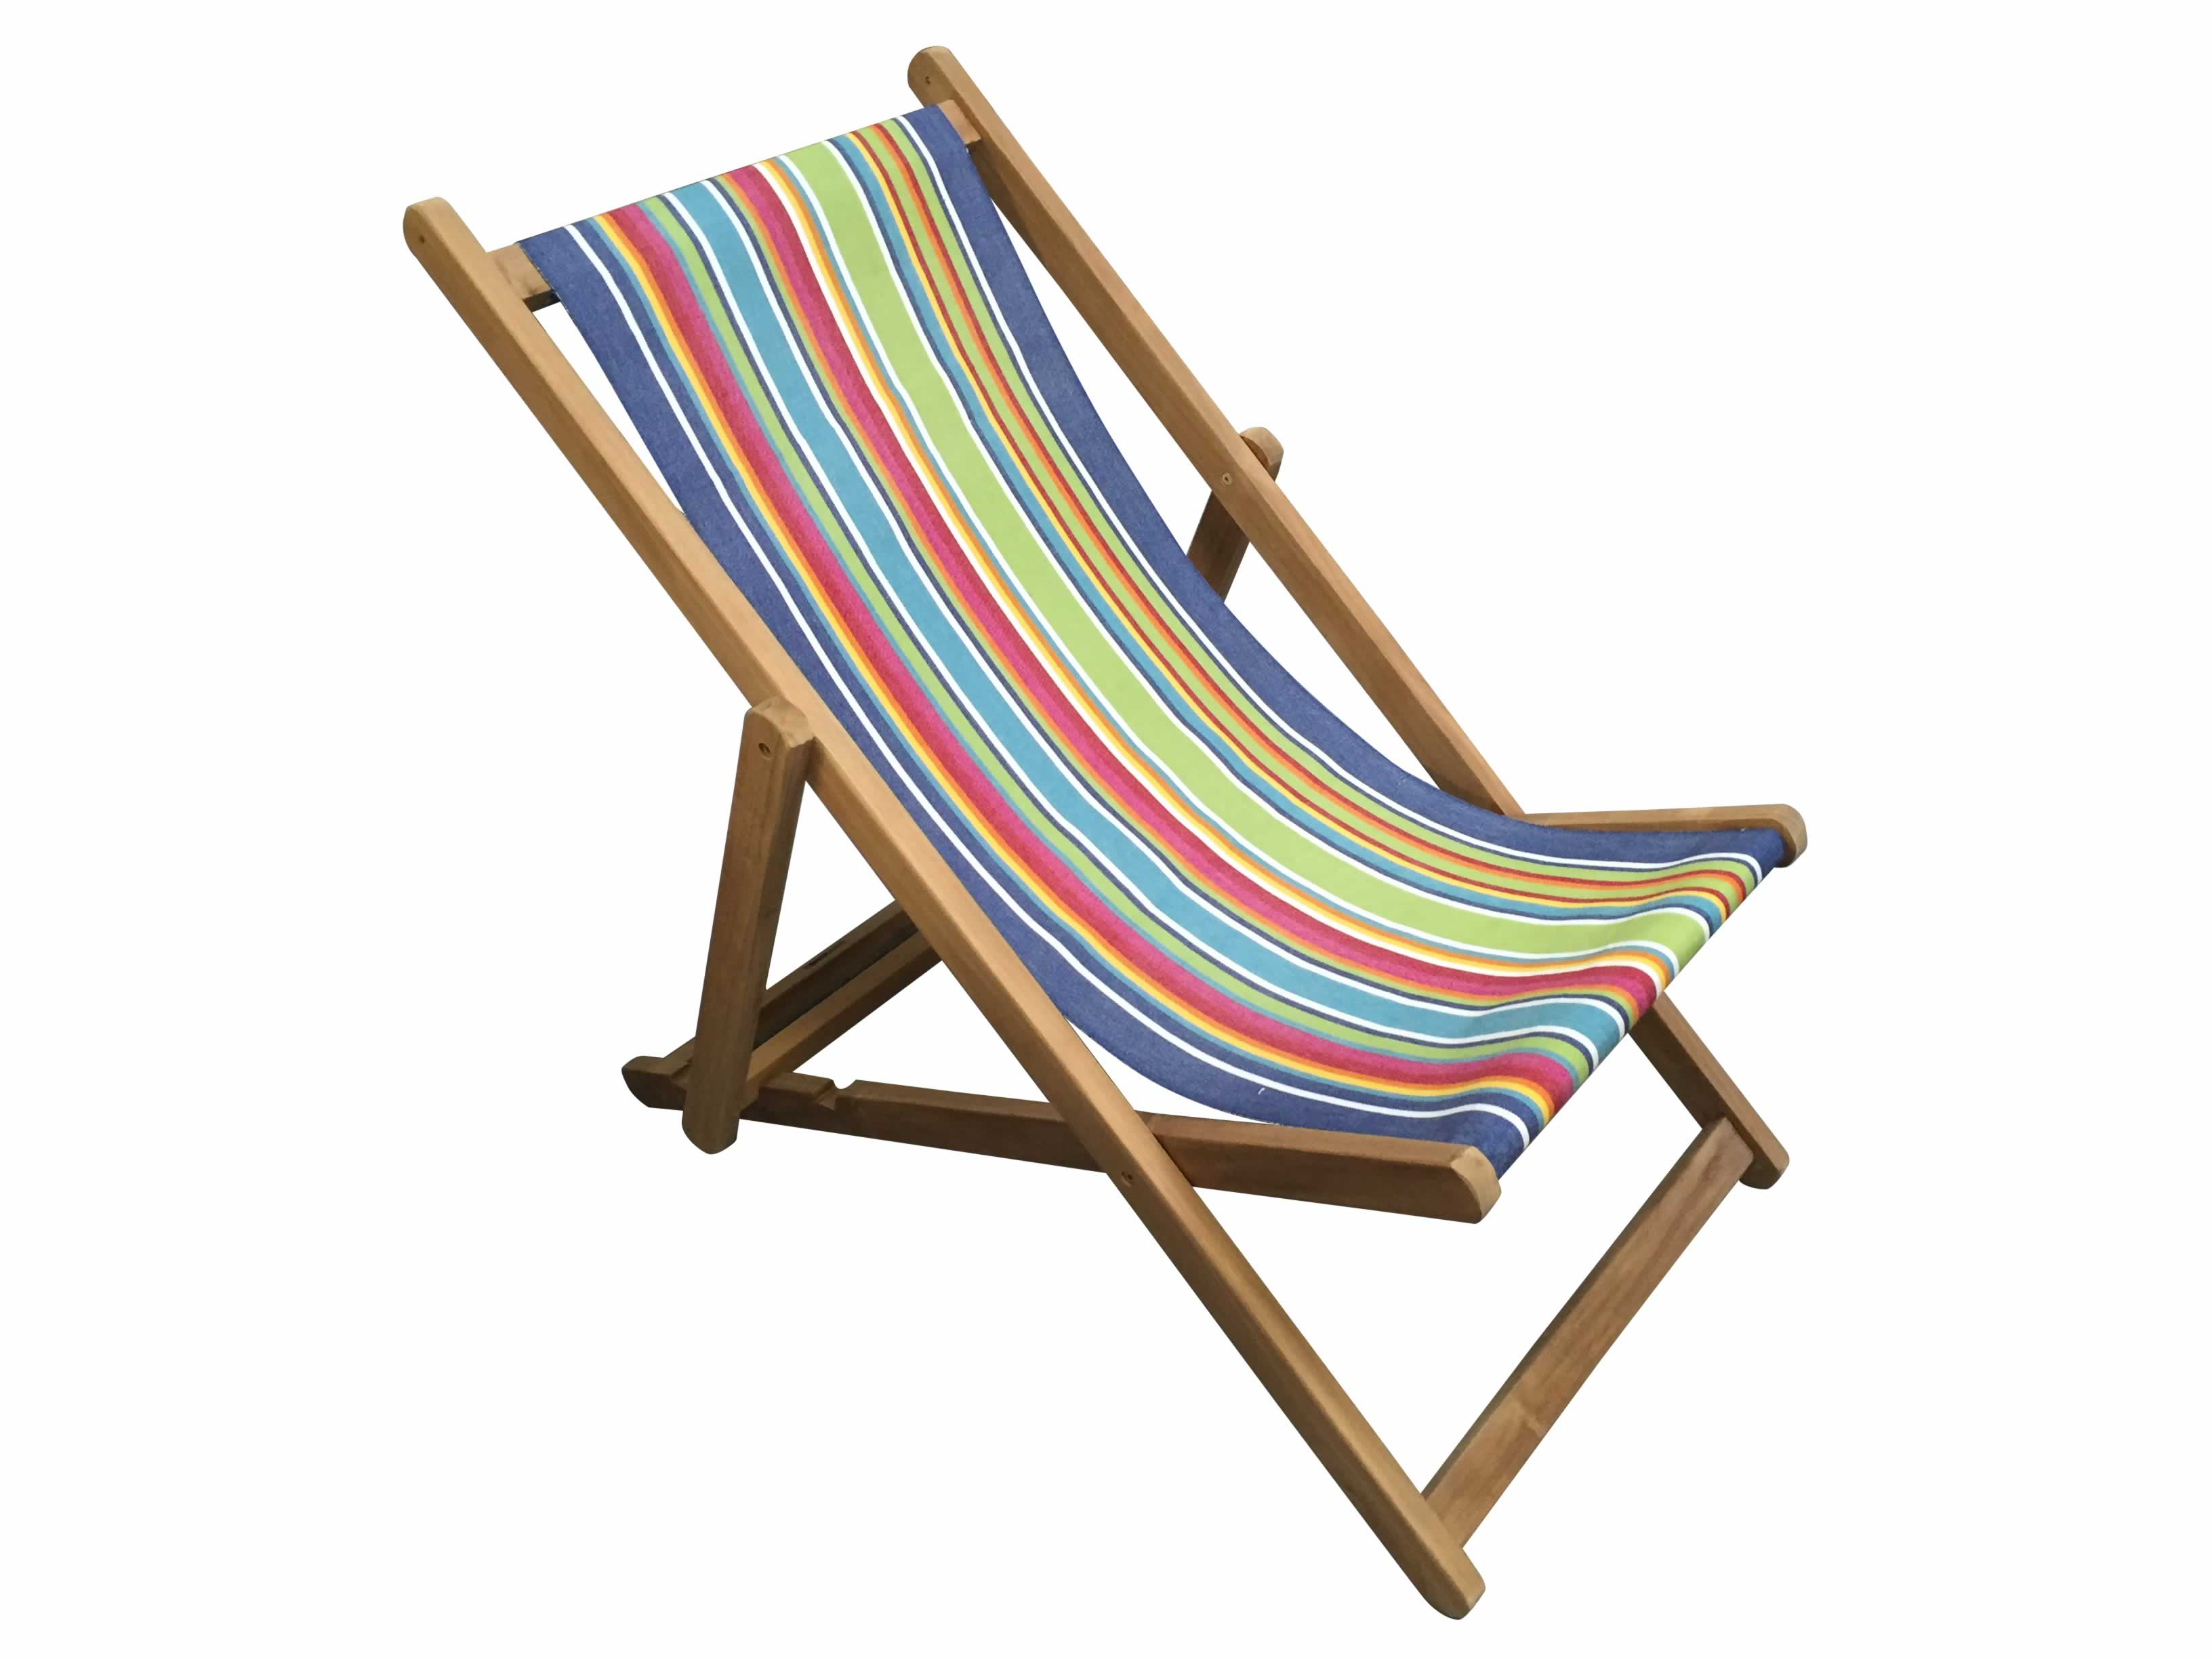 blue, green, red - Deckchair Canvas | Deckchair Fabrics | Striped Deck Chair Fabrics